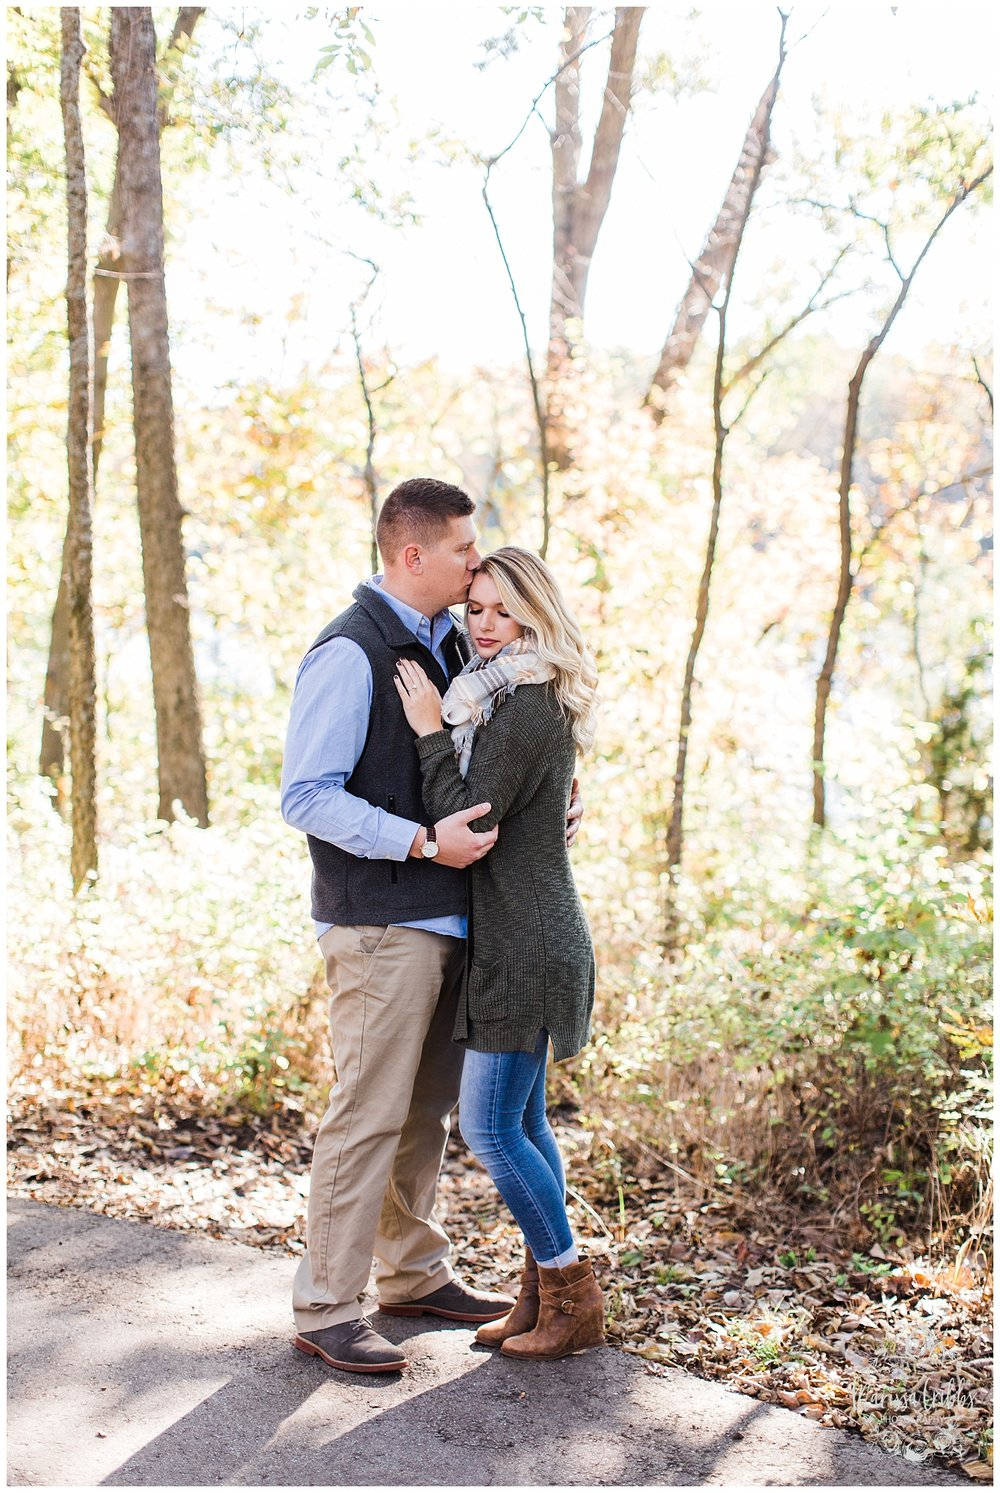 MORGAN HUGHES & RYAN ENGAGEMENT | KC ENGAGEMENT PHOTOS | MARISSA CRIBBS PHOTOGRAPHY_3383.jpg